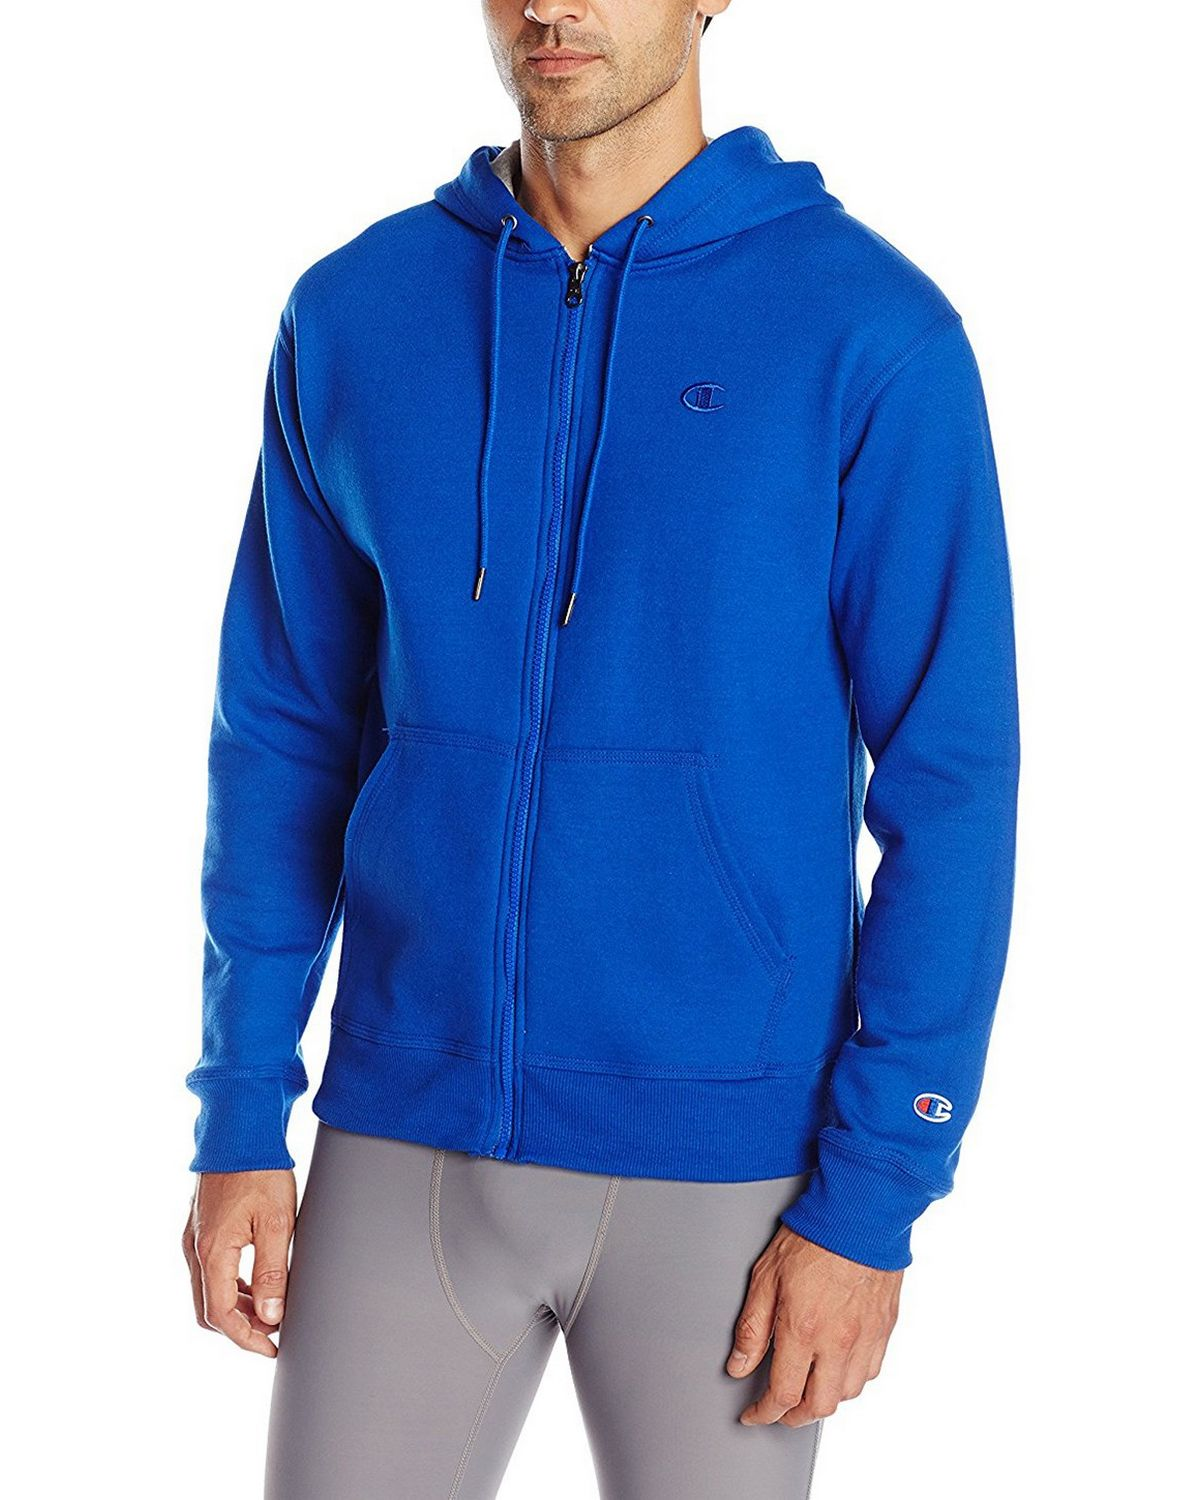 Champion S0891 Mens Fleece Full Zip Jacket - Surf The Web - XL S0891